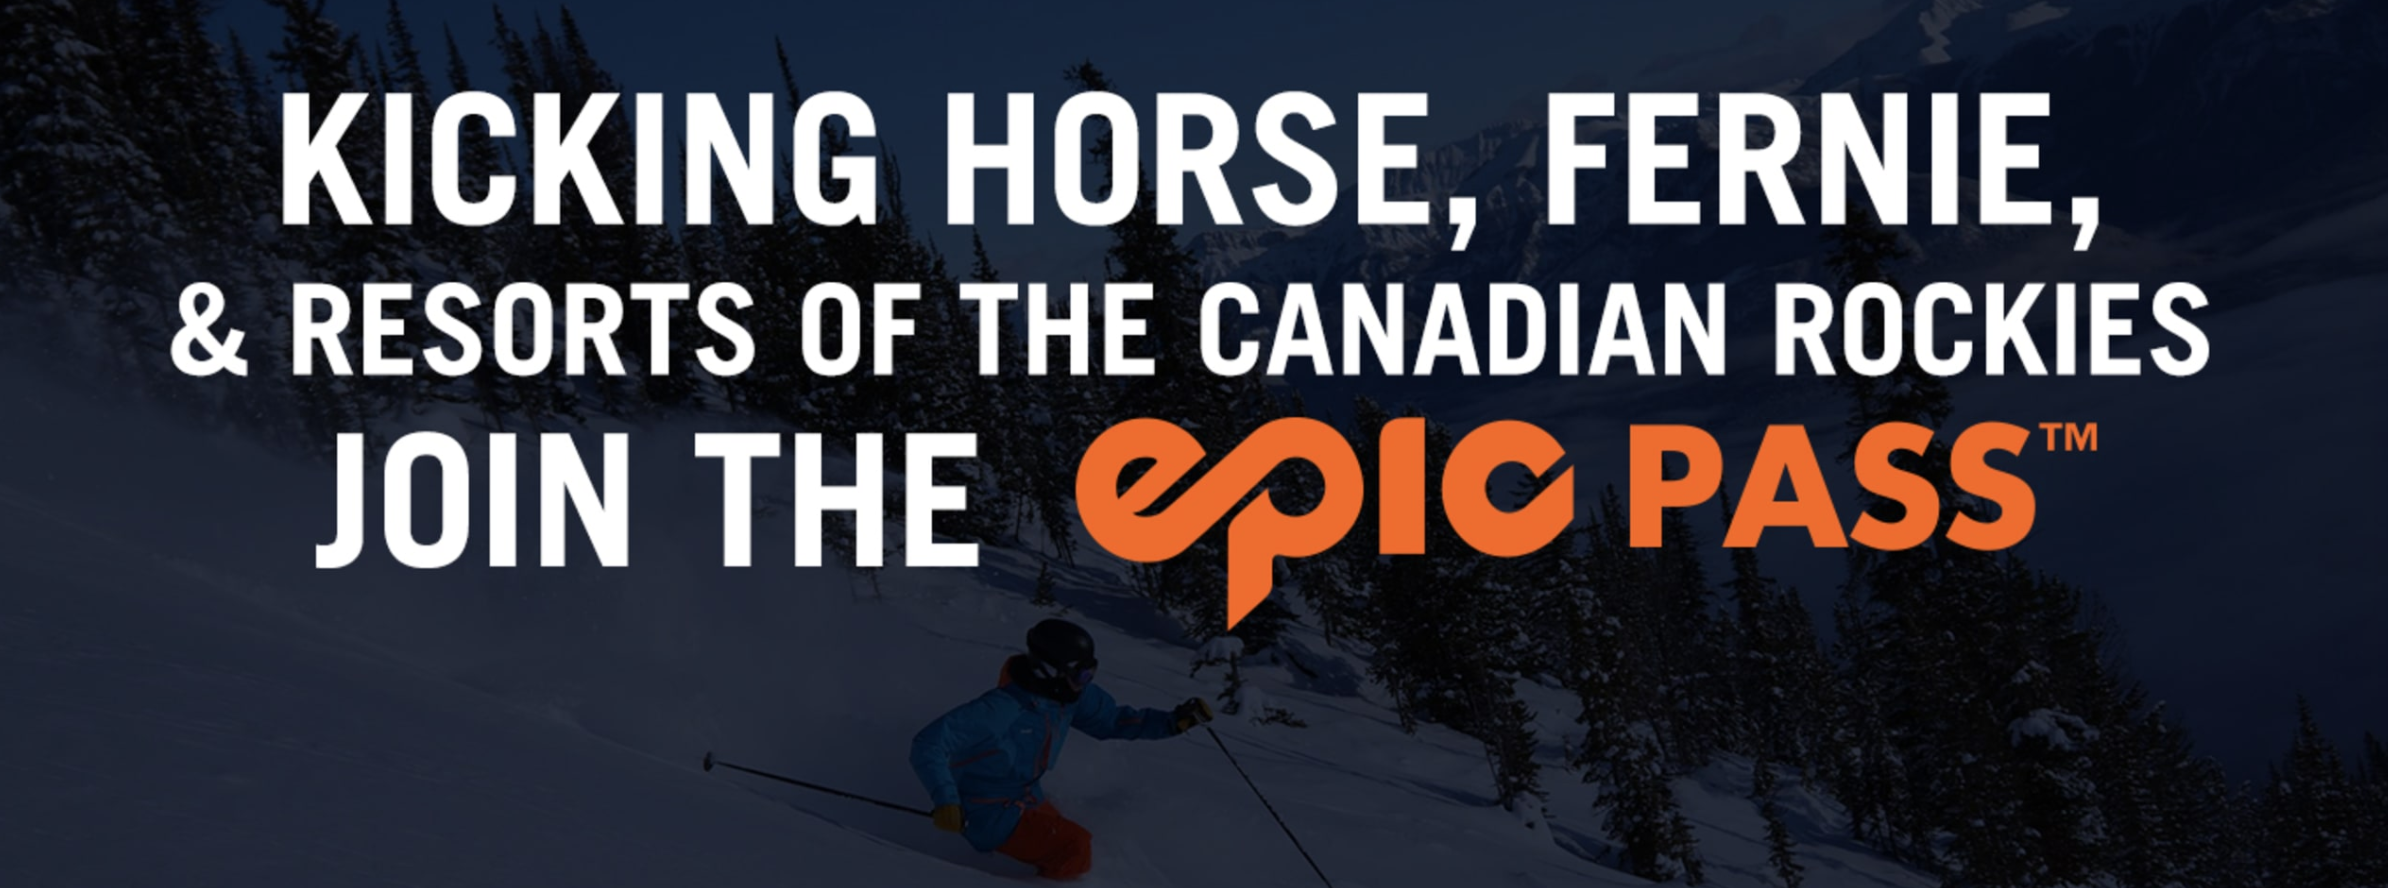 Epic Pass now includes Canadian Rocky Mtn Resorts